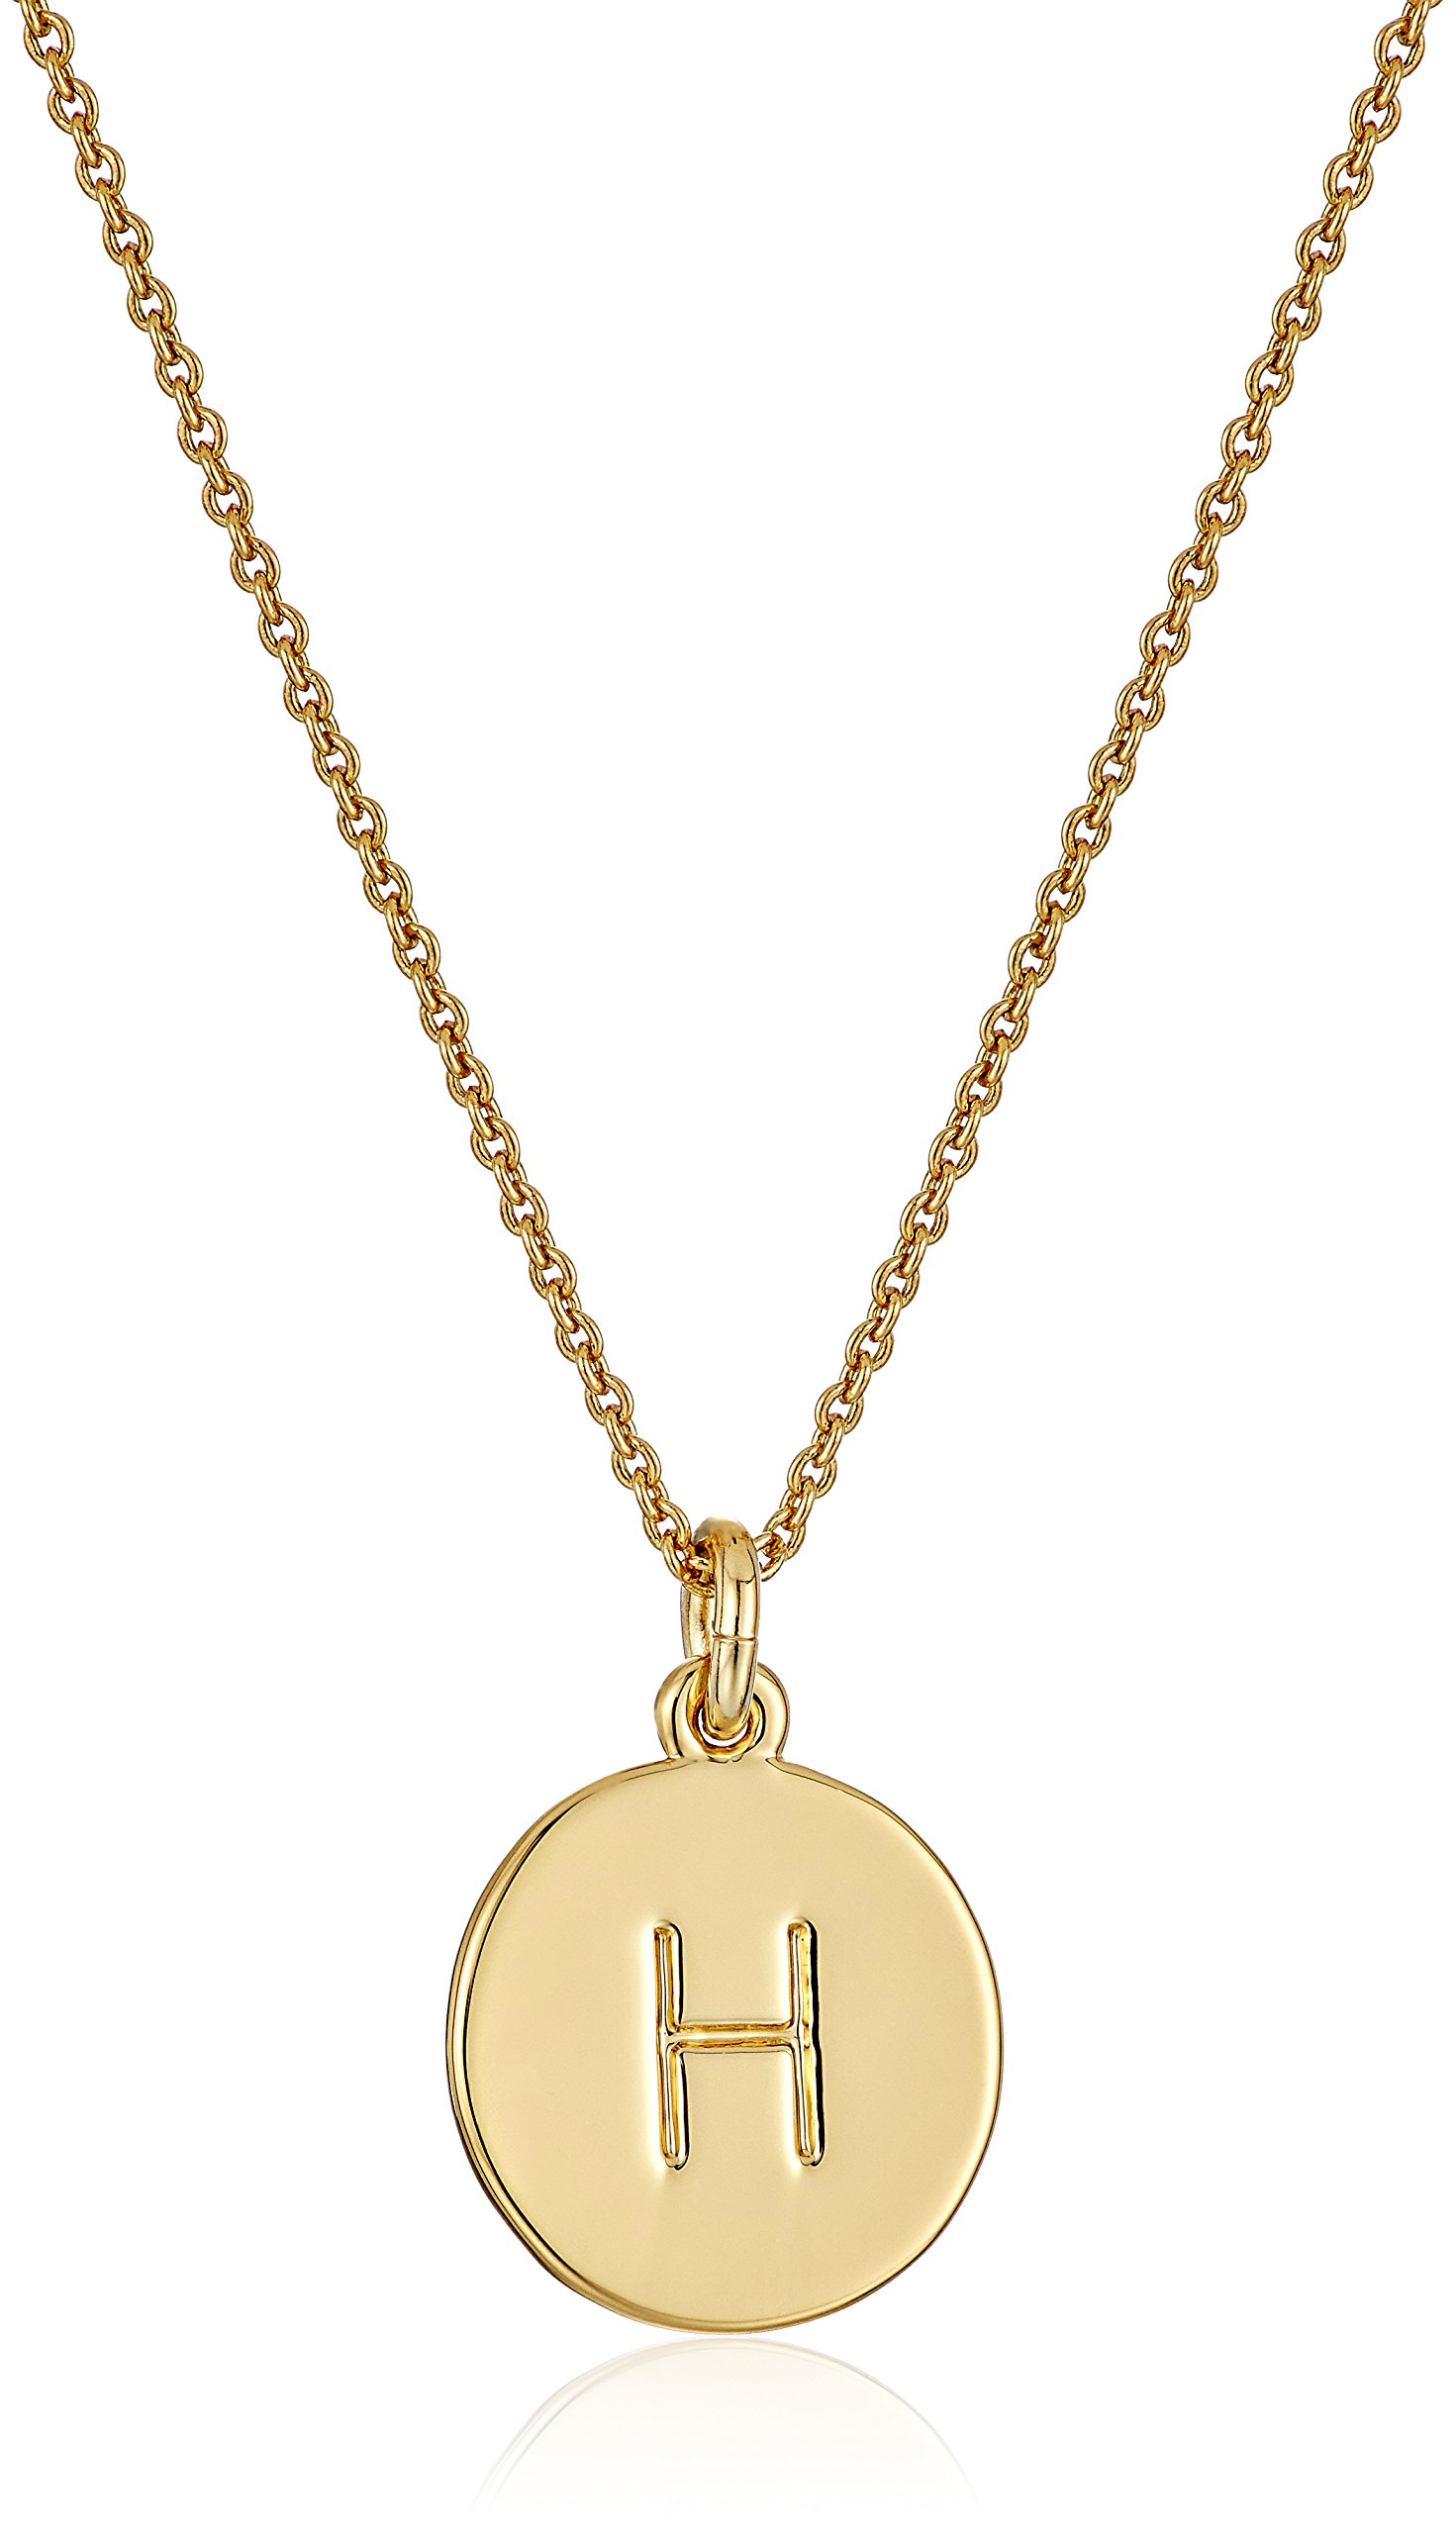 Kate Spade New York ''Kate Spade Pendants H Pendant Necklace, 17'' + 3.5'' Extender